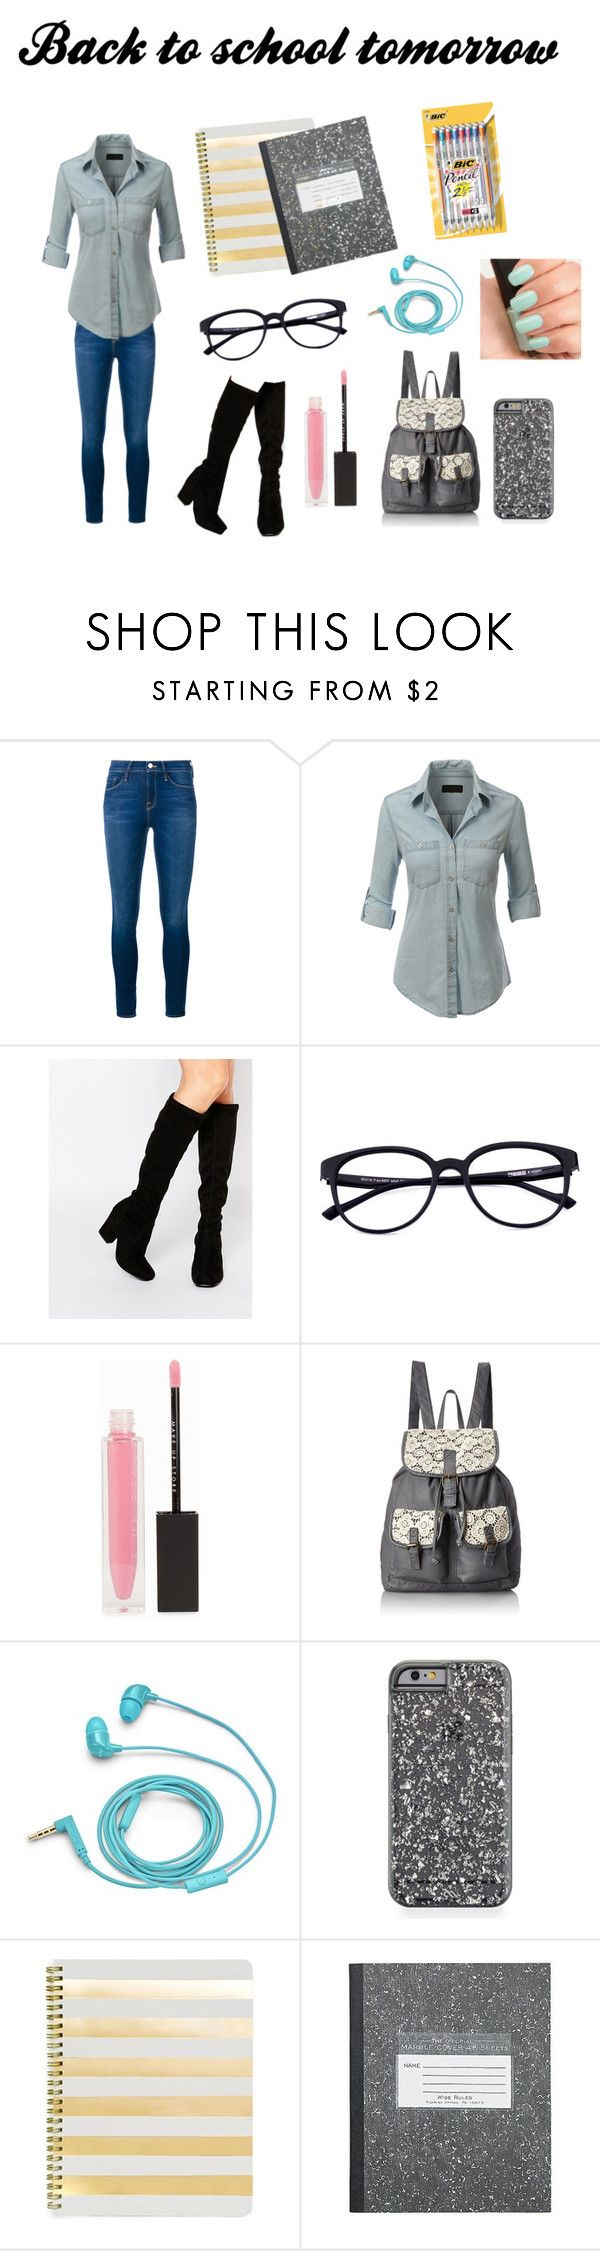 """""""Spring Break is over :-("""" by banana4563210 ❤ liked on Polyvore featuring Frame Denim, LE3NO, Faith, MAKE UP STORE, T-shirt & Jeans, FOSSIL, NARS Cosmetics, Sugar Paper and BIC"""